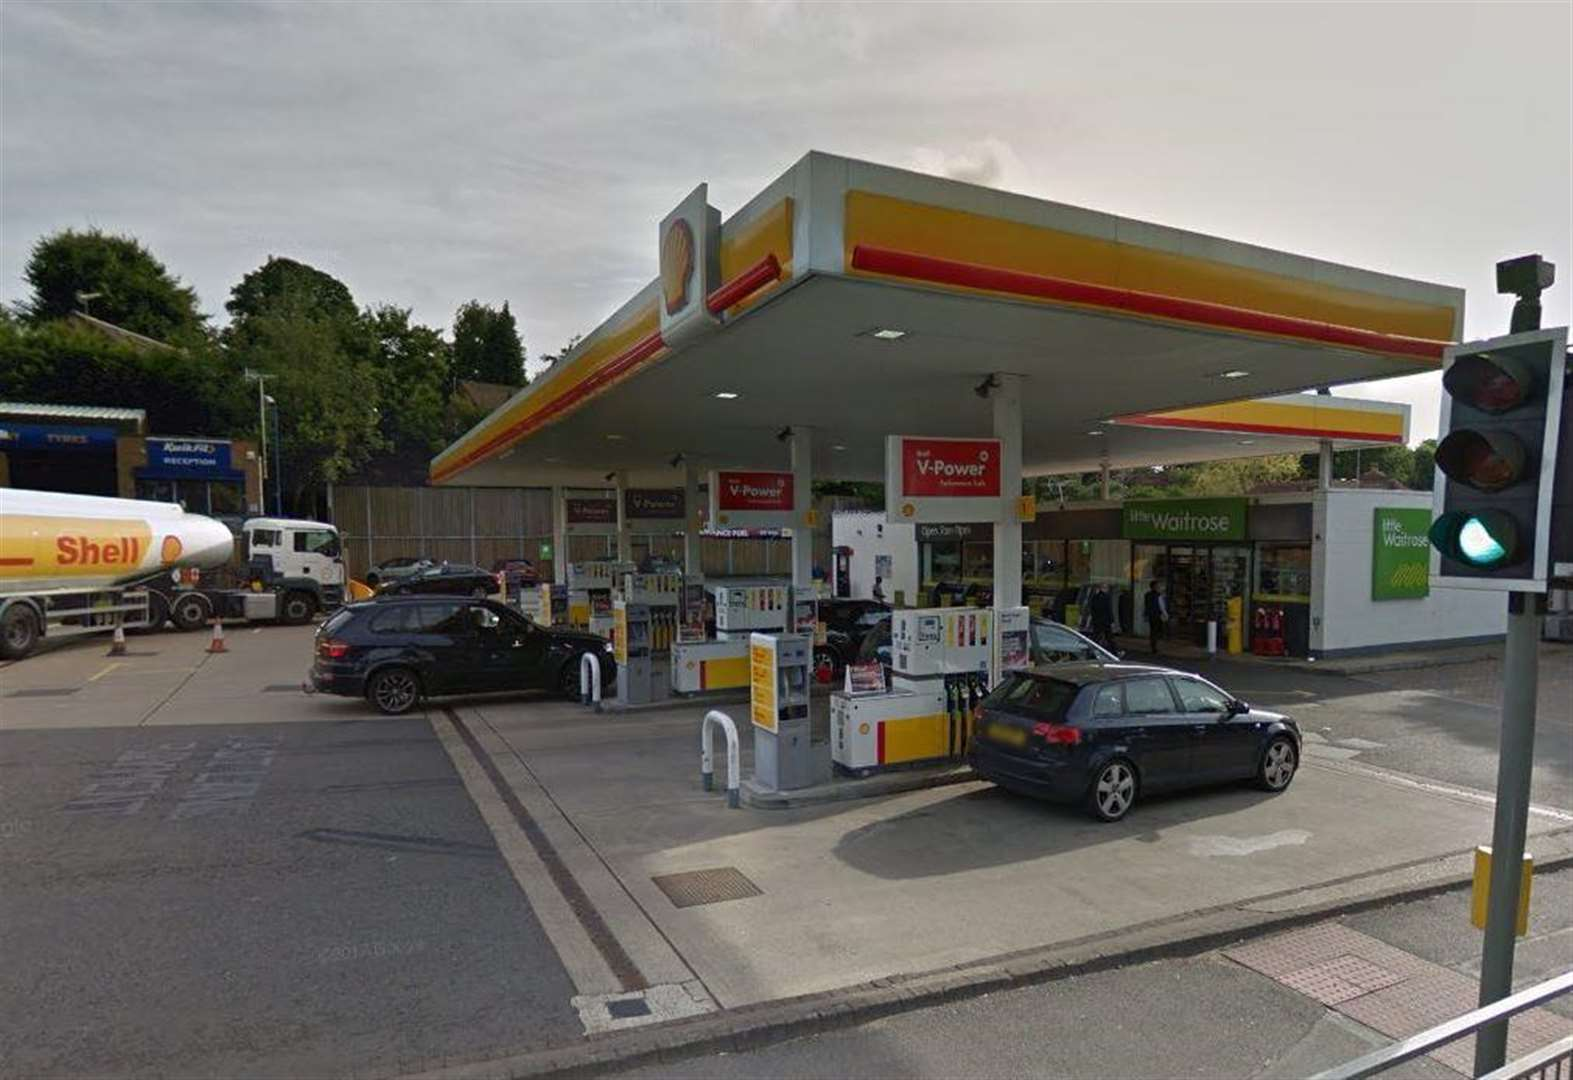 Man accused of racially abusing staff at petrol station store